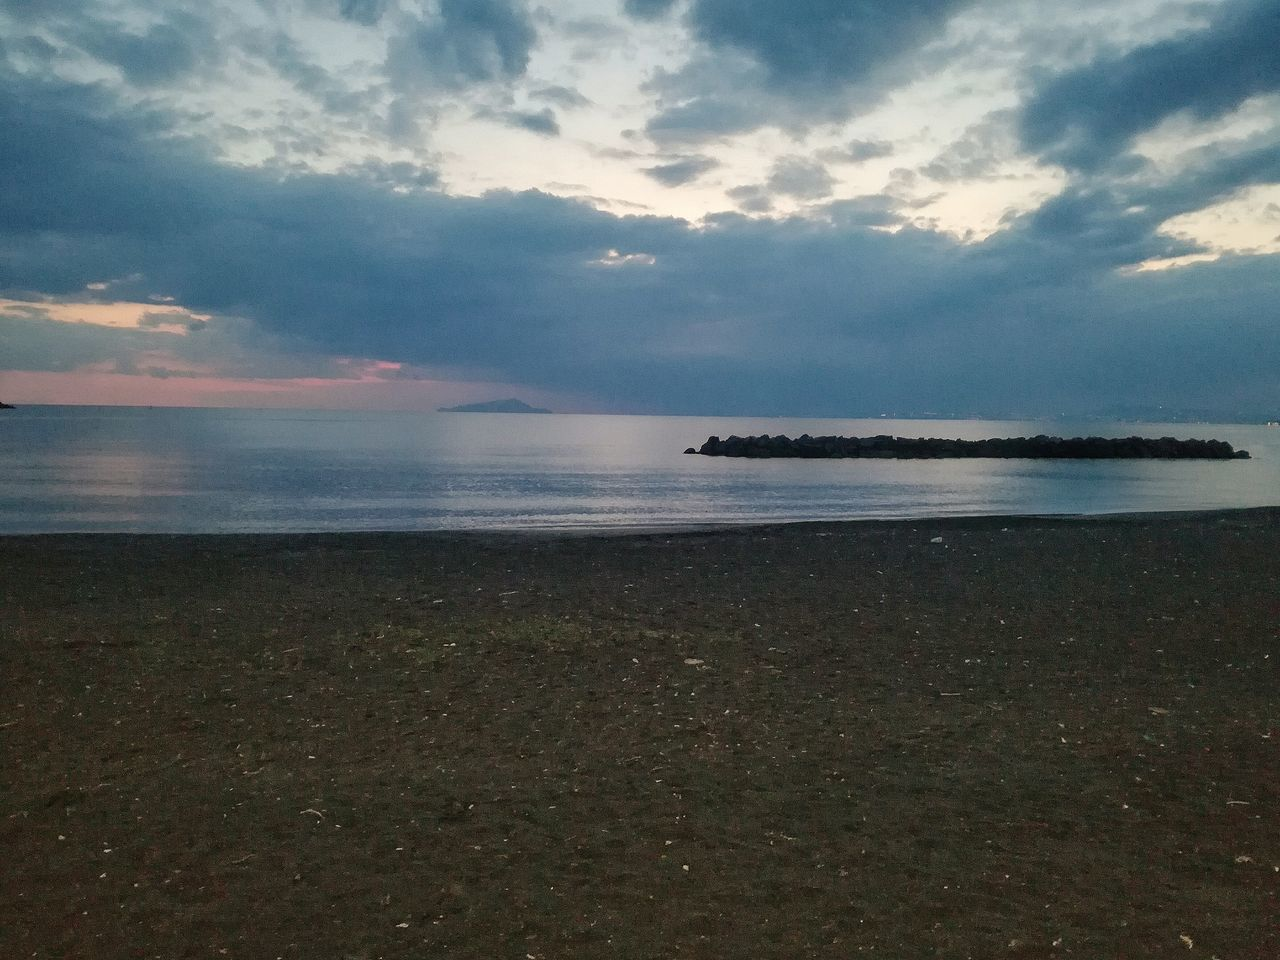 Sea Nature Sky Beauty In Nature Scenics Cloud - Sky No People Water Tranquility Sunset Outdoors Tranquil Scene Beach Horizon Over Water Day Vesuvio Castellammare Di Stabia Napoli Italy🇮🇹 Naples, Italy Naples,